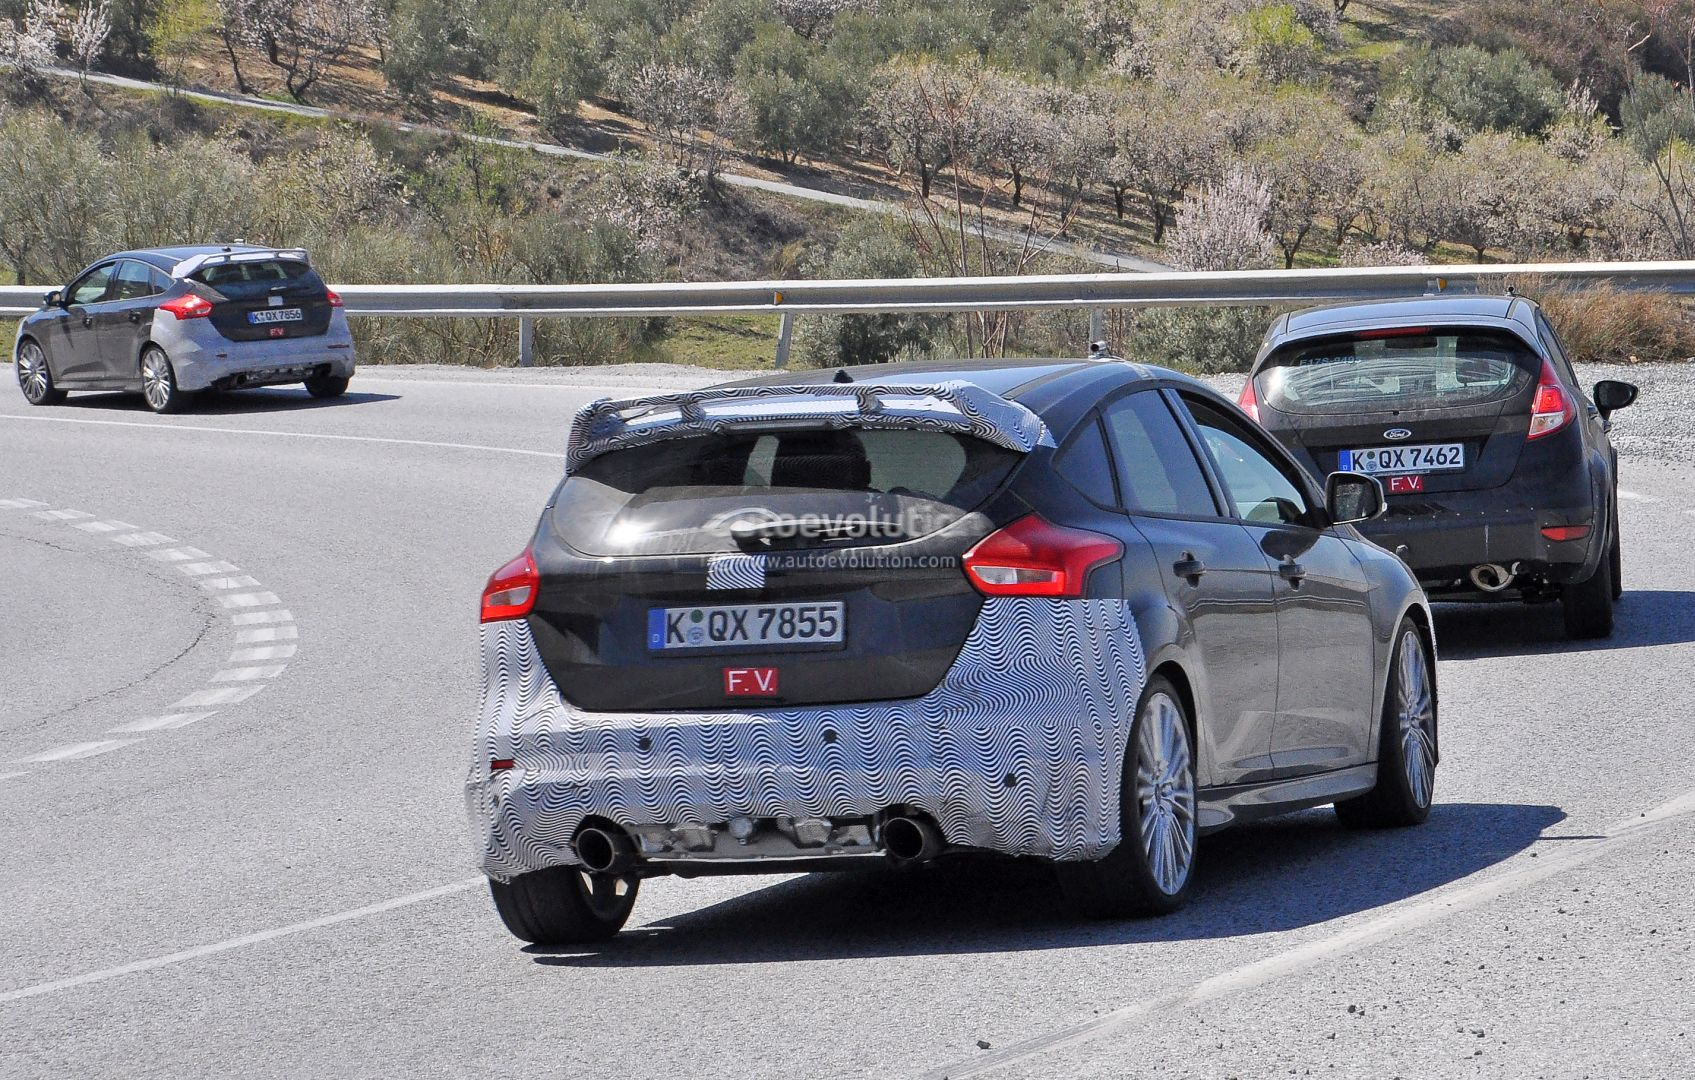 2020 Ford Fiesta RS Spied for the First Time - autoevolution